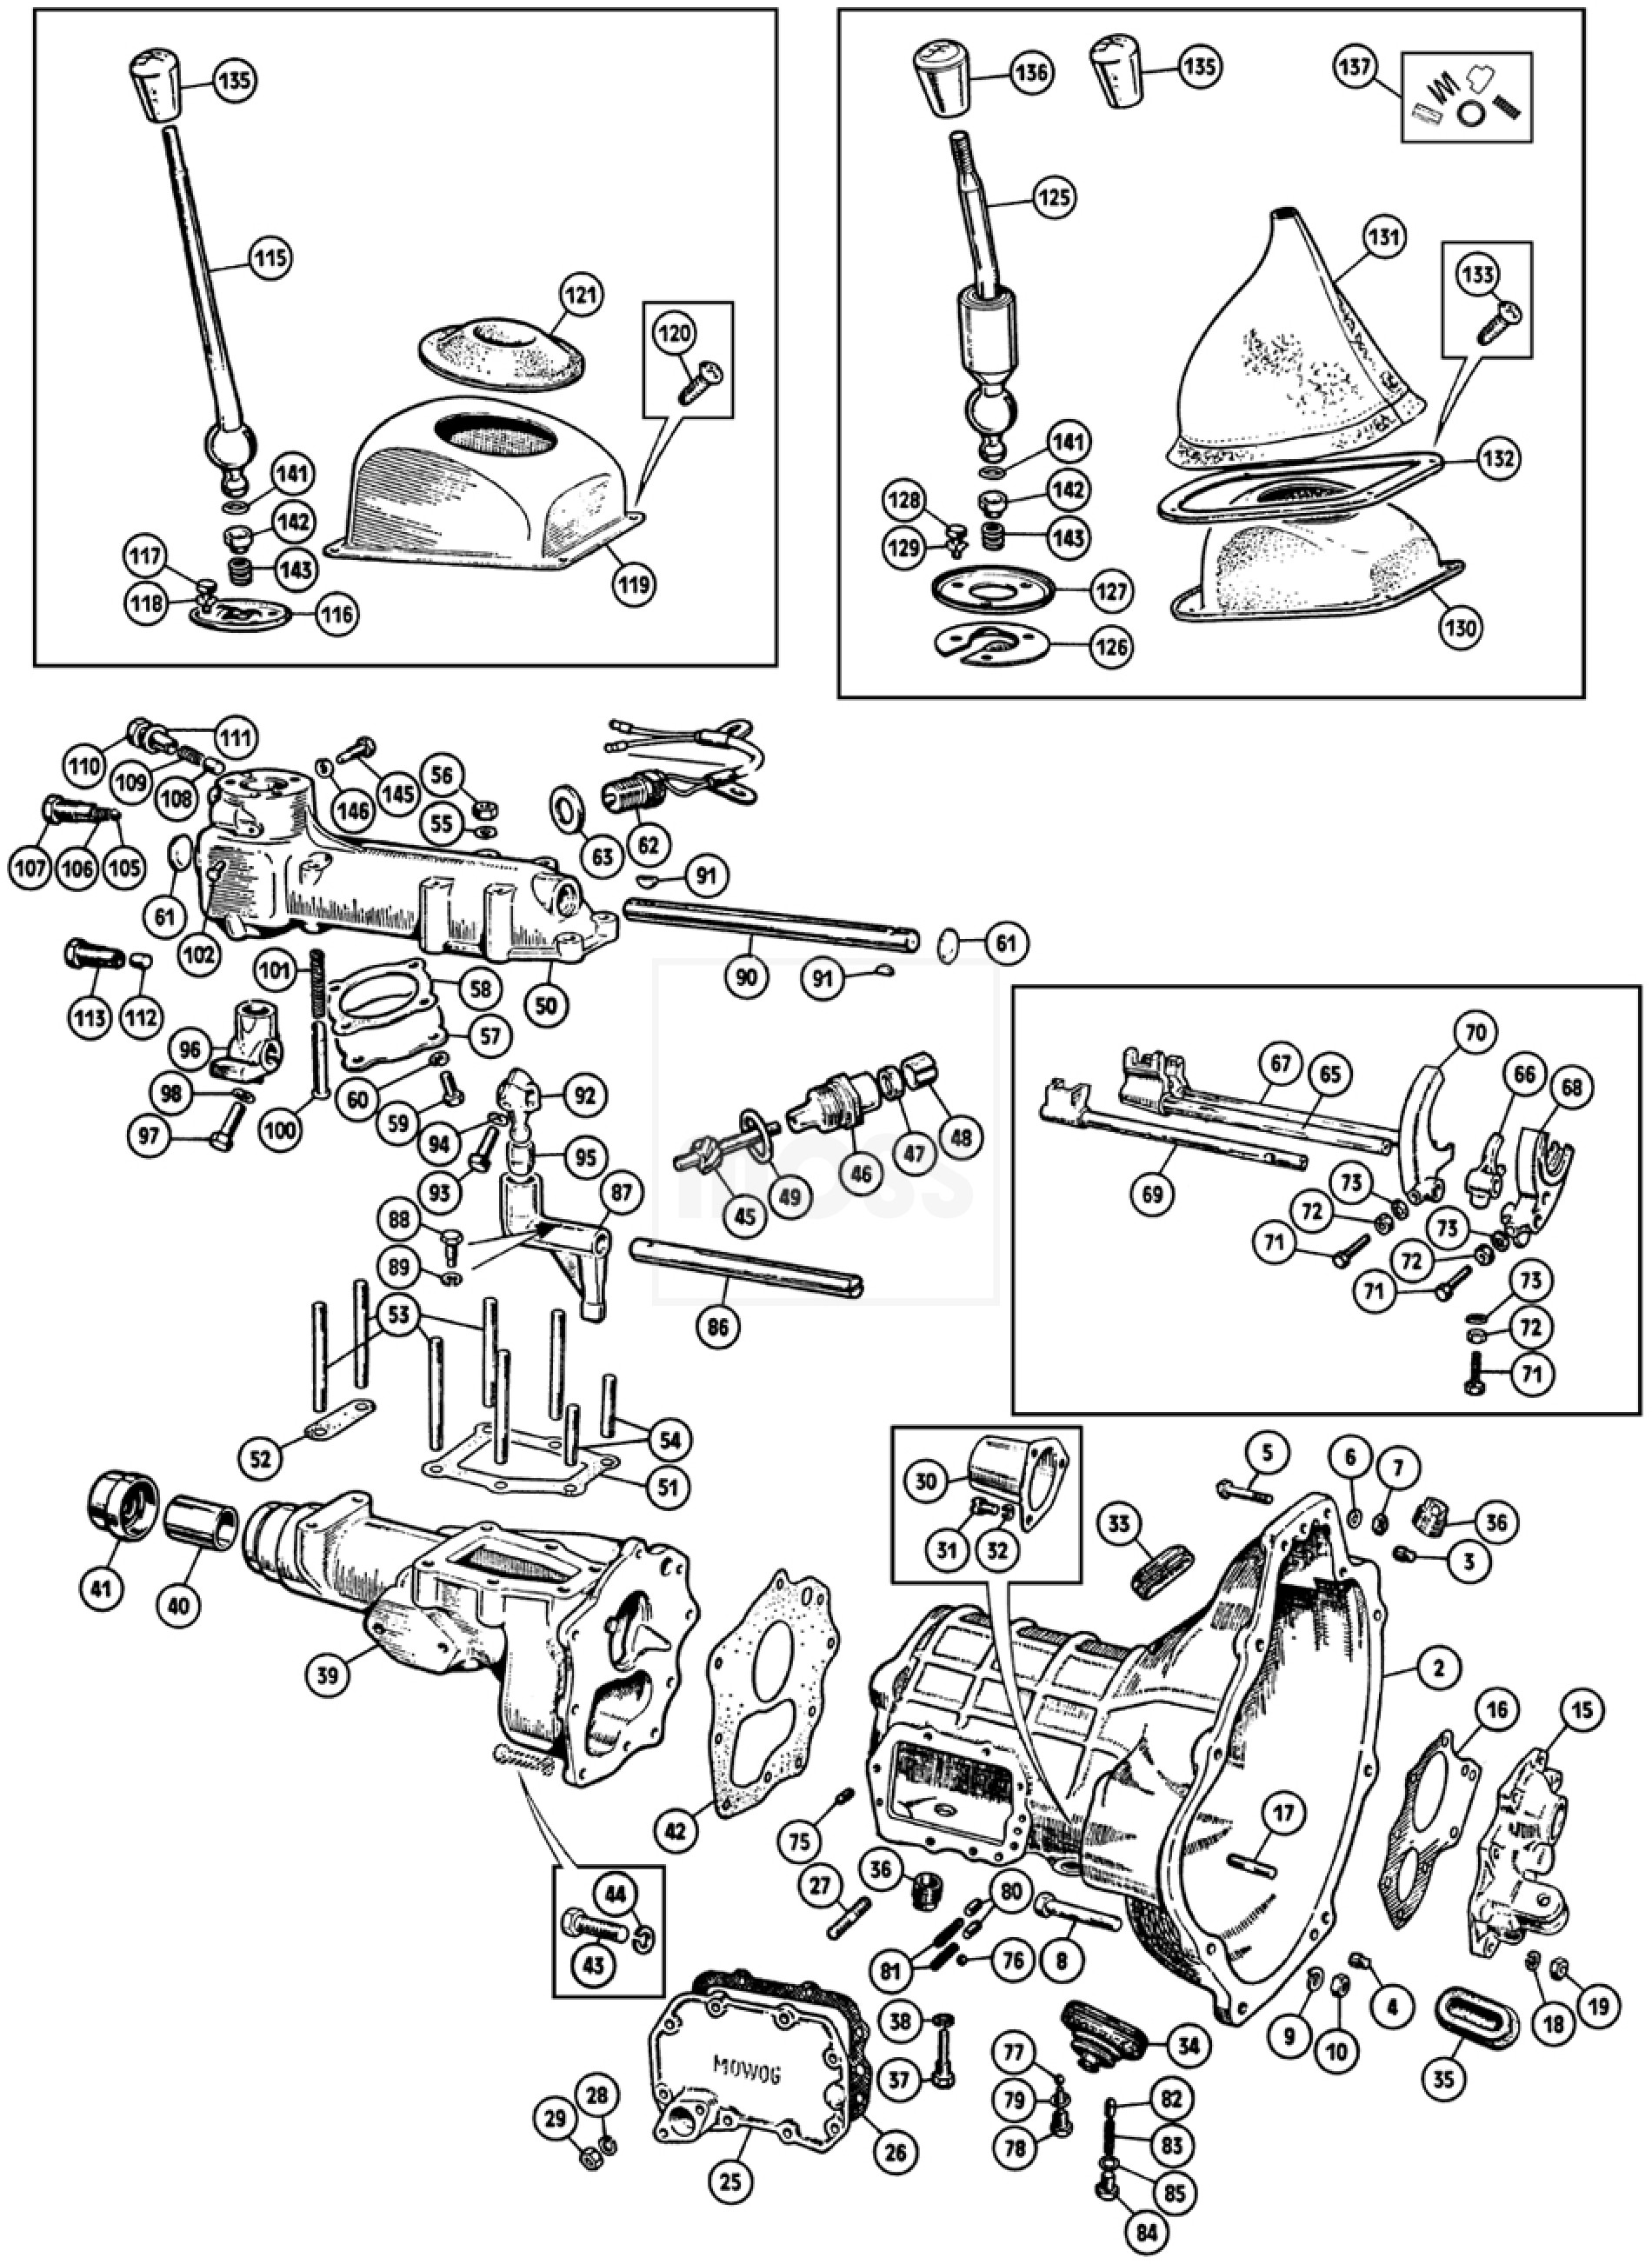 mg midget 1500 wiring diagram for a four way switch with multiple lights mga source